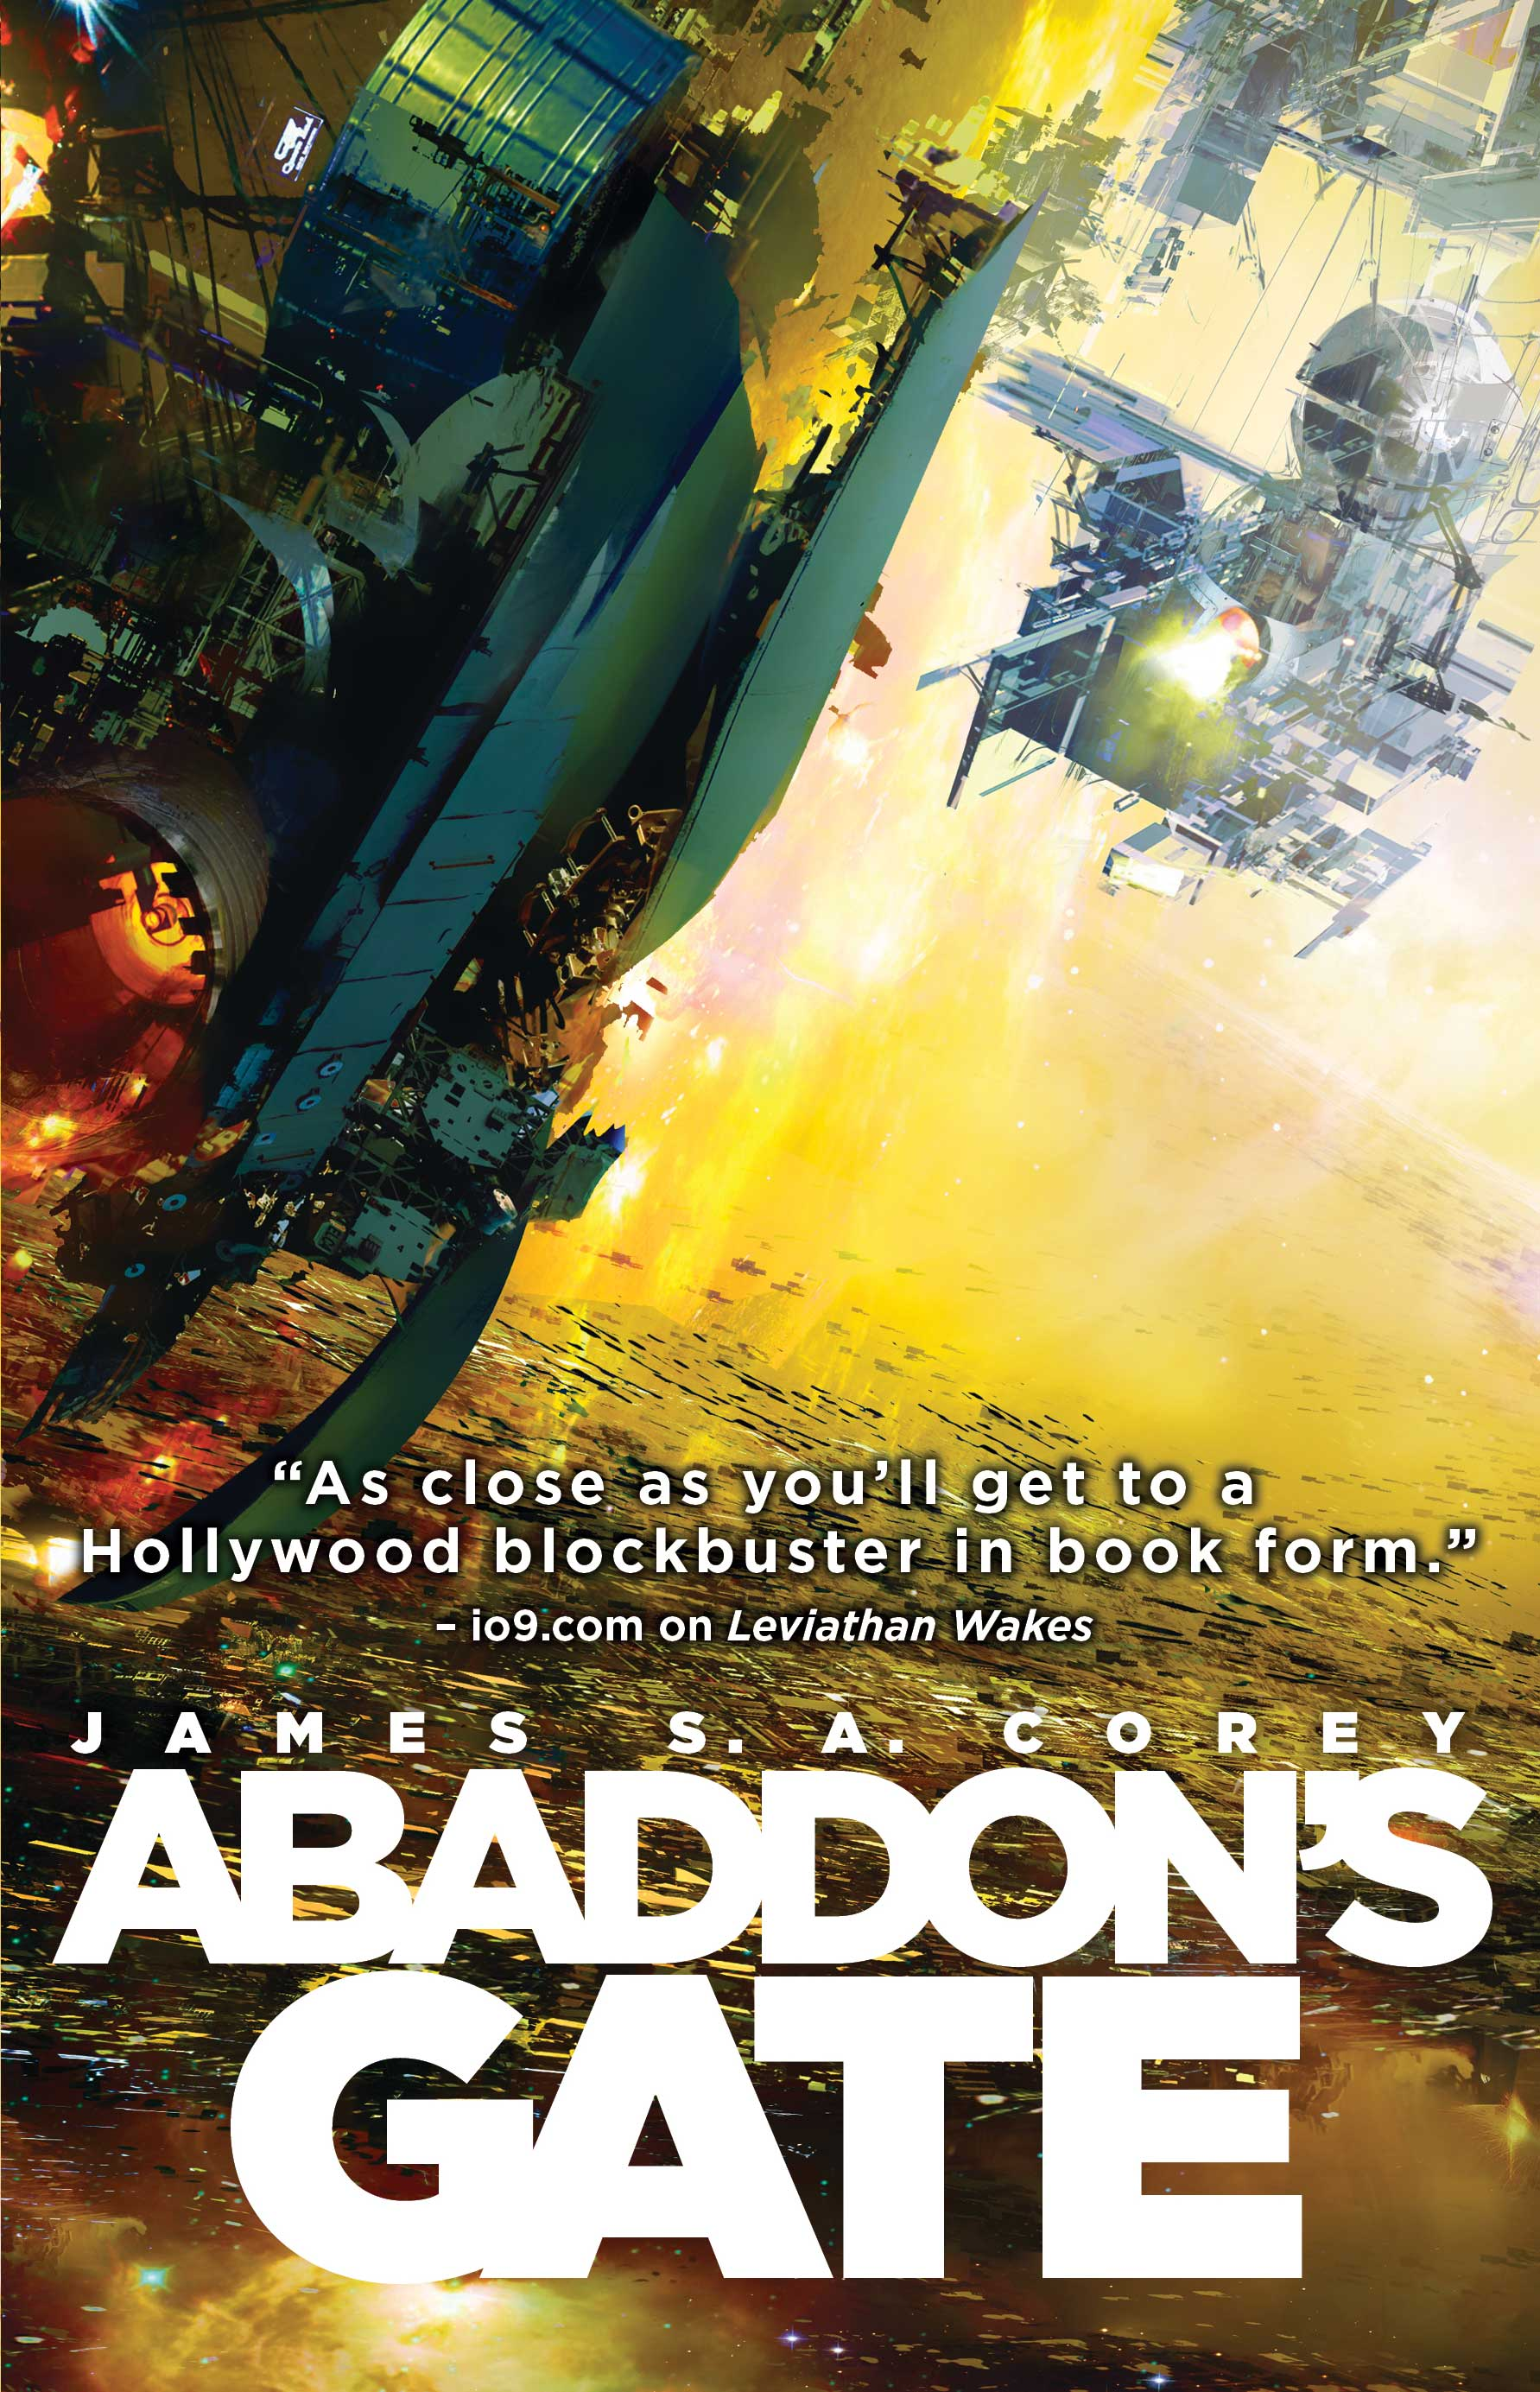 Abaddon's Gate by James S.A. Corey (The Expanse #3) – SFFWorld